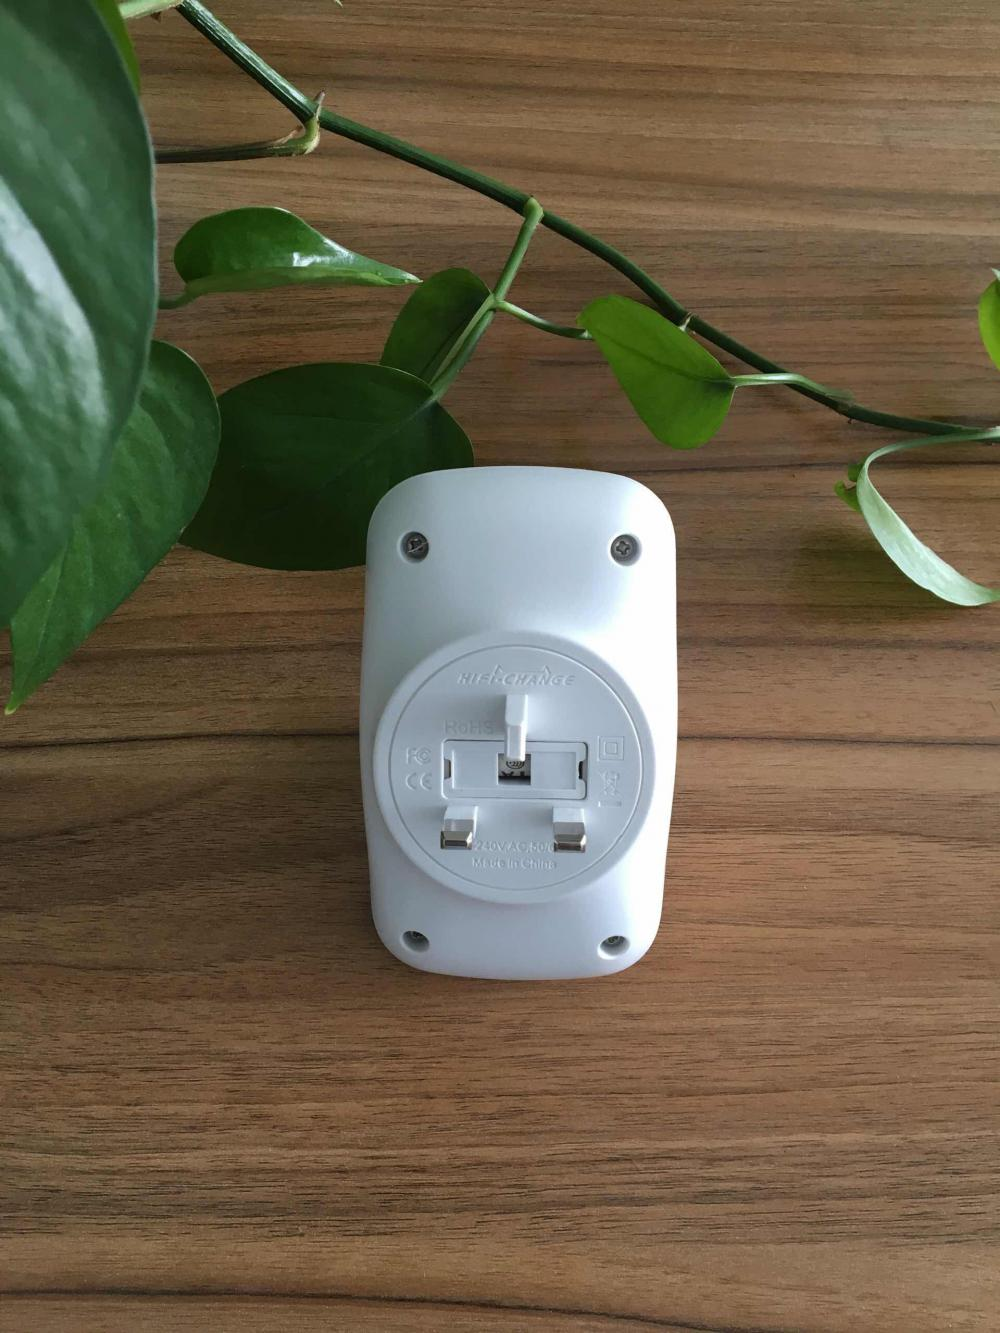 16-UK Plug-Hifi-Change Ultrasonic Pest Rodent Repeller